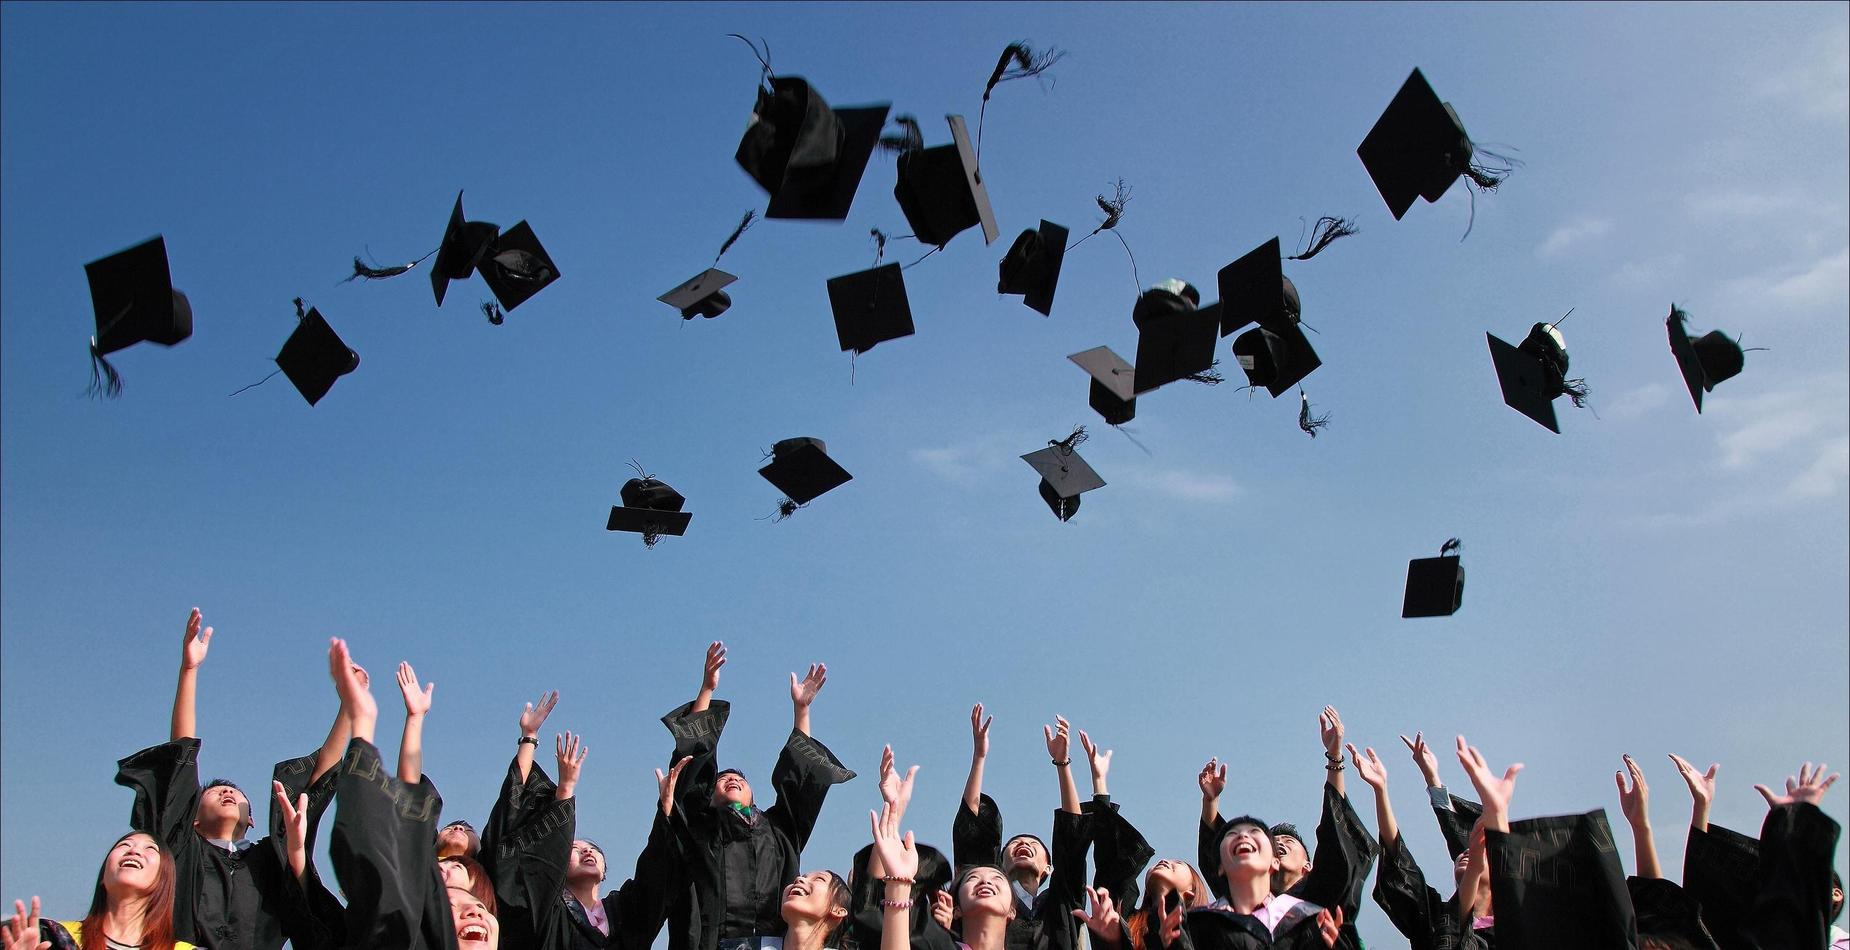 Students throwing hats in the air